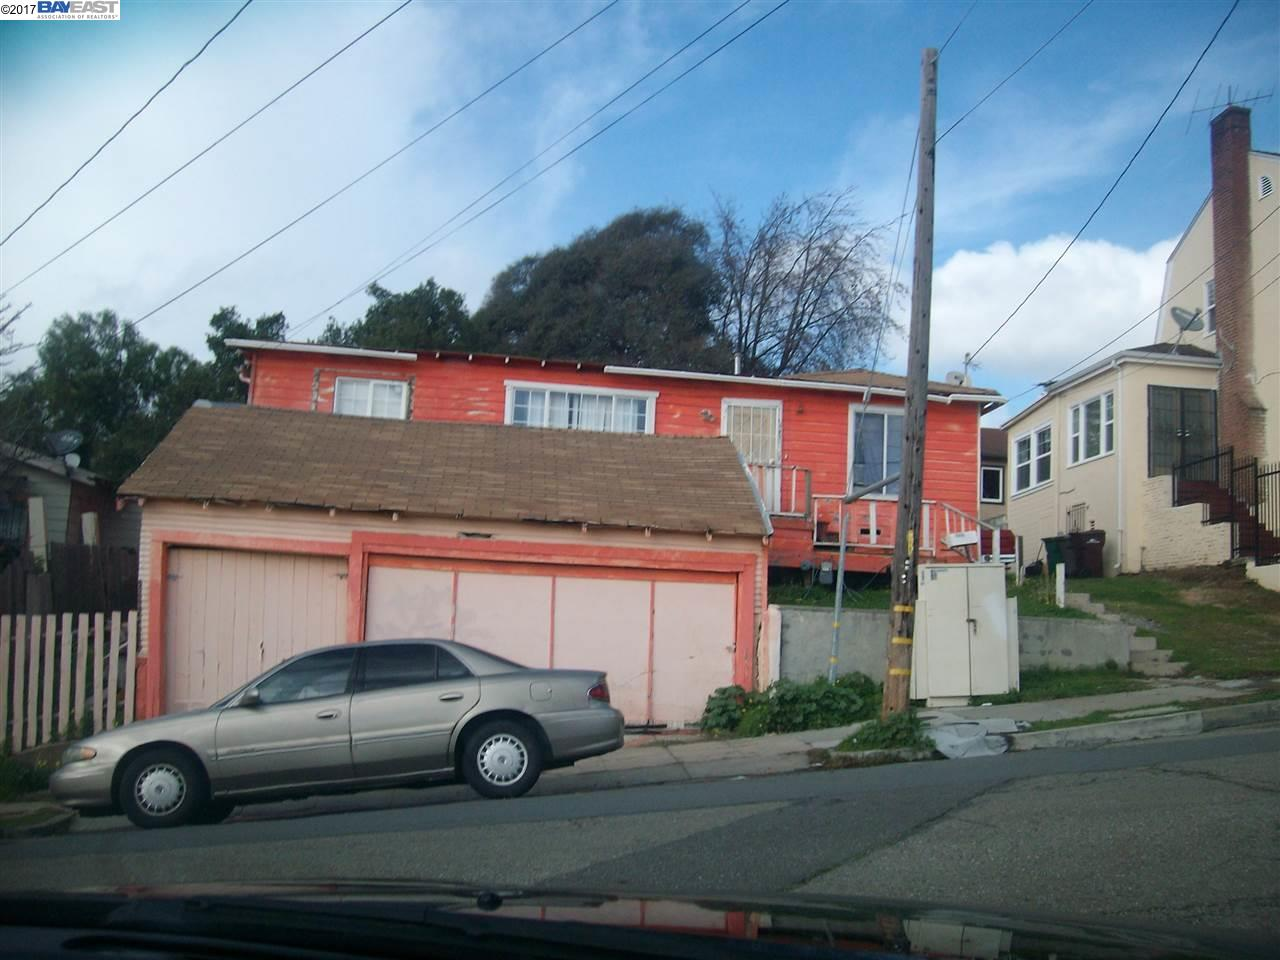 2527 90th Avenue, Oakland, CA 94605. ""